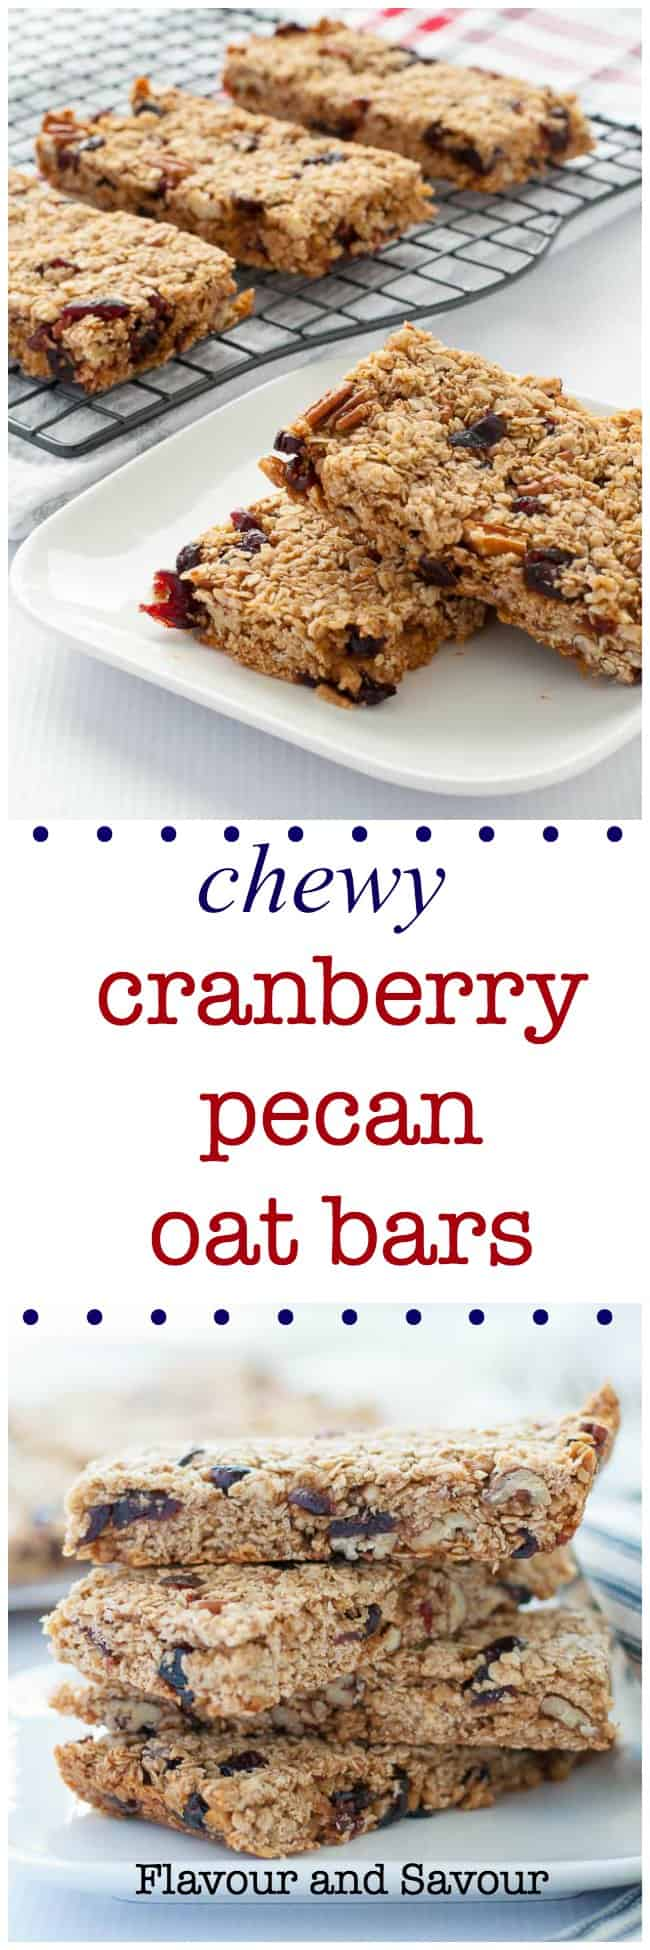 These Chewy Cranberry Pecan Oat Bars are naturally sweetened with honey and coconut palm sugar. They're a perfect make-ahead granola bar as they freeze well. Great for lunches.